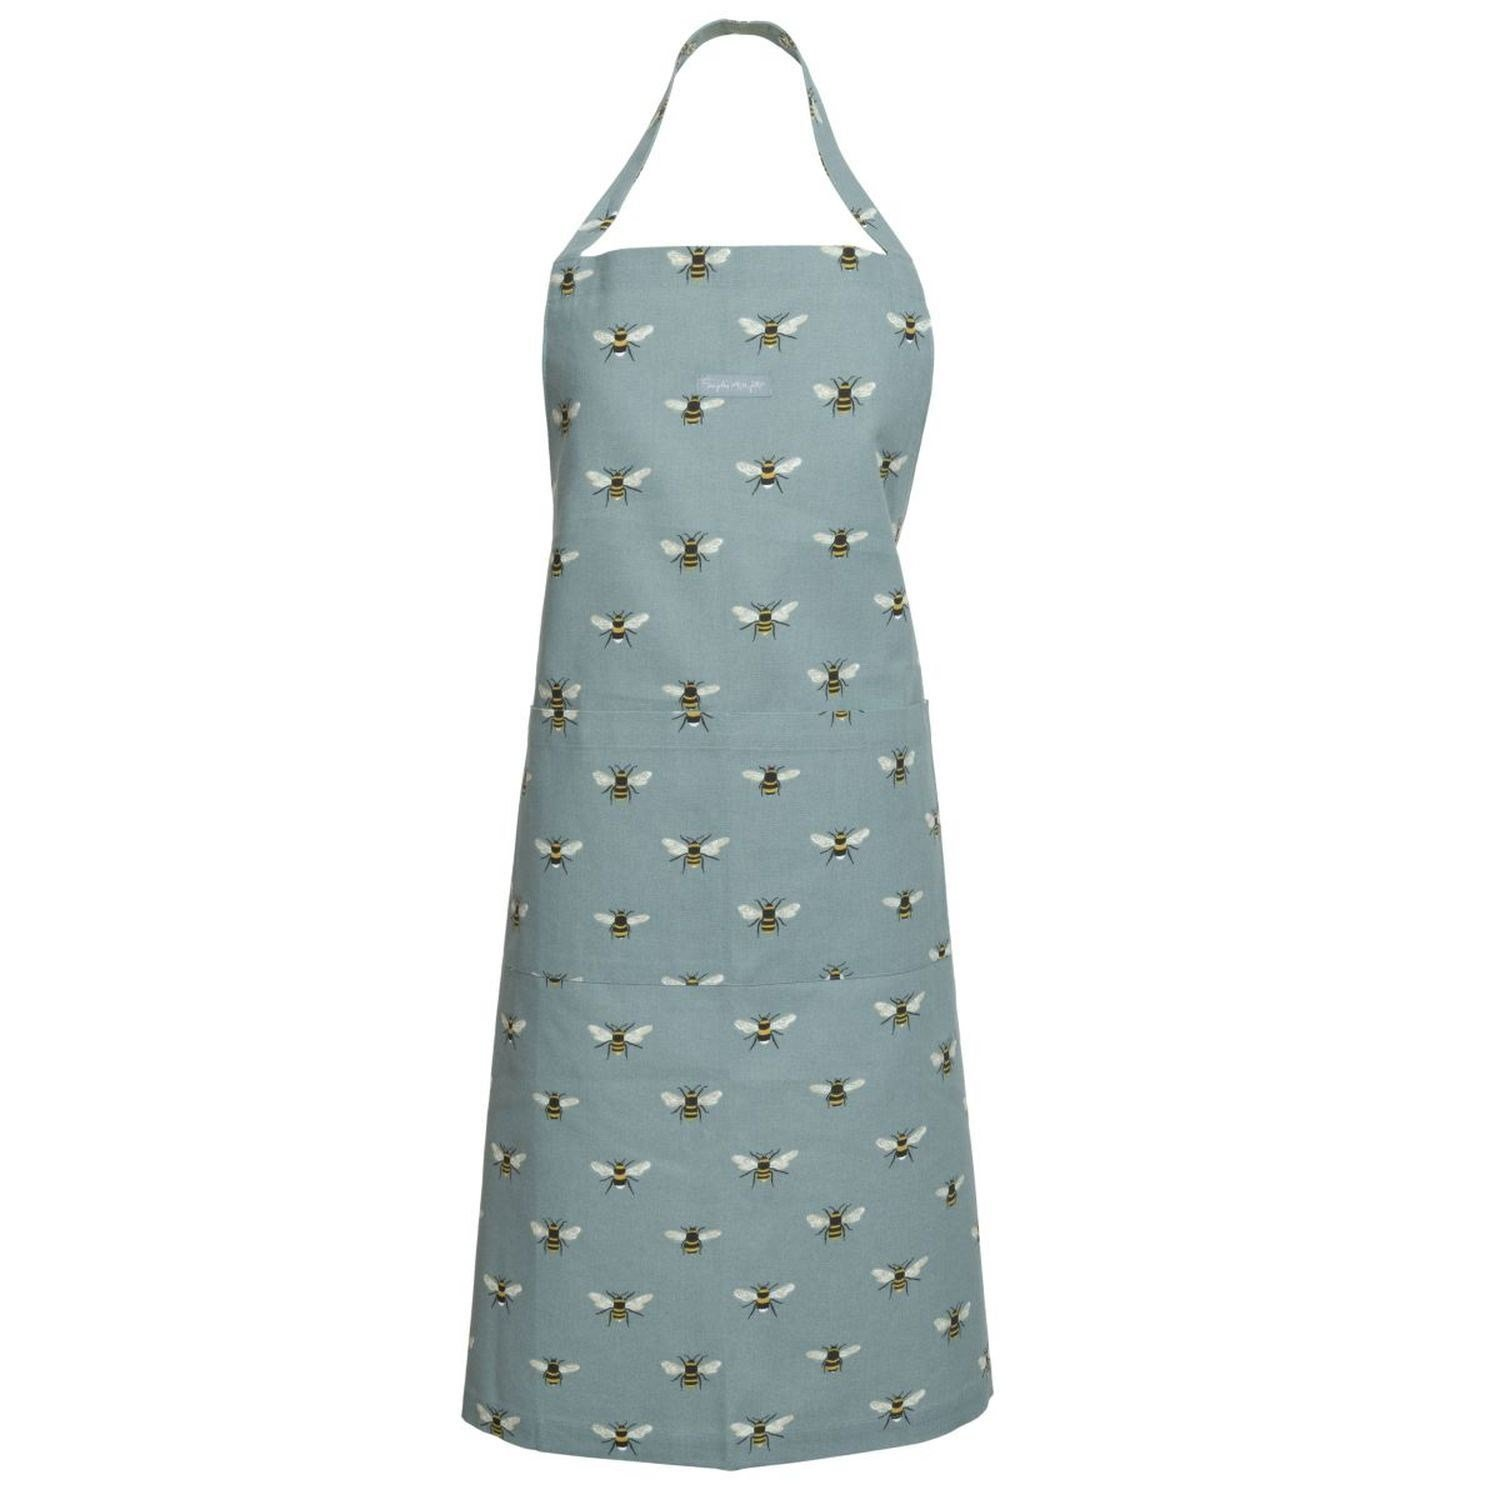 Washable Adult Apron in Teal Bee Print by Sophie Allport